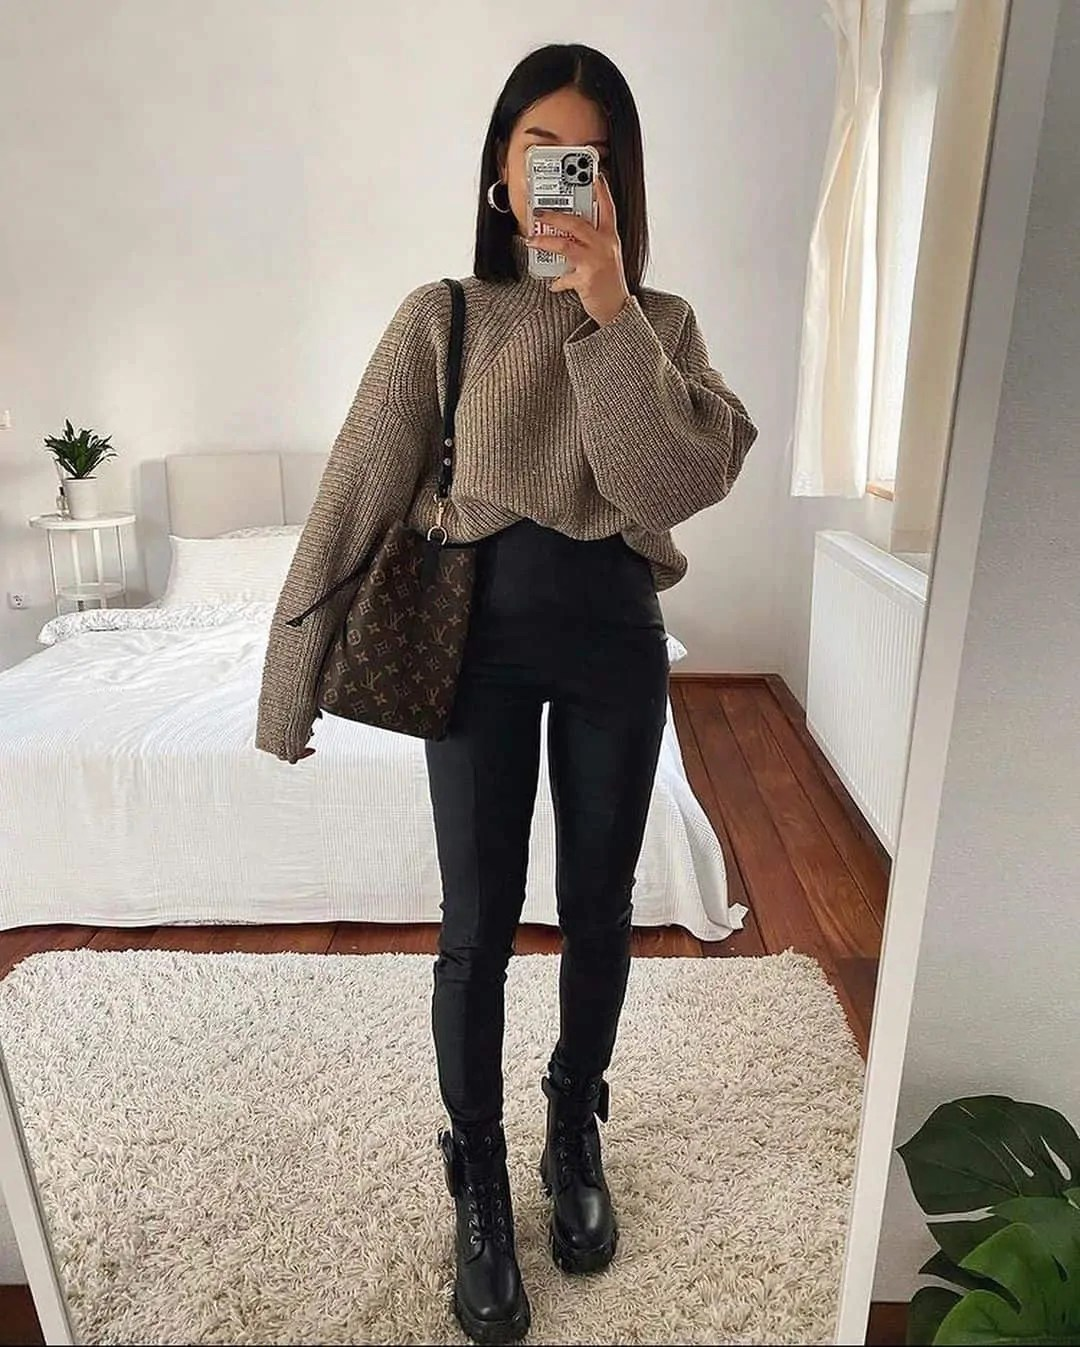 100+ fashion inspo outfits that you have to see no matter what your style is 57